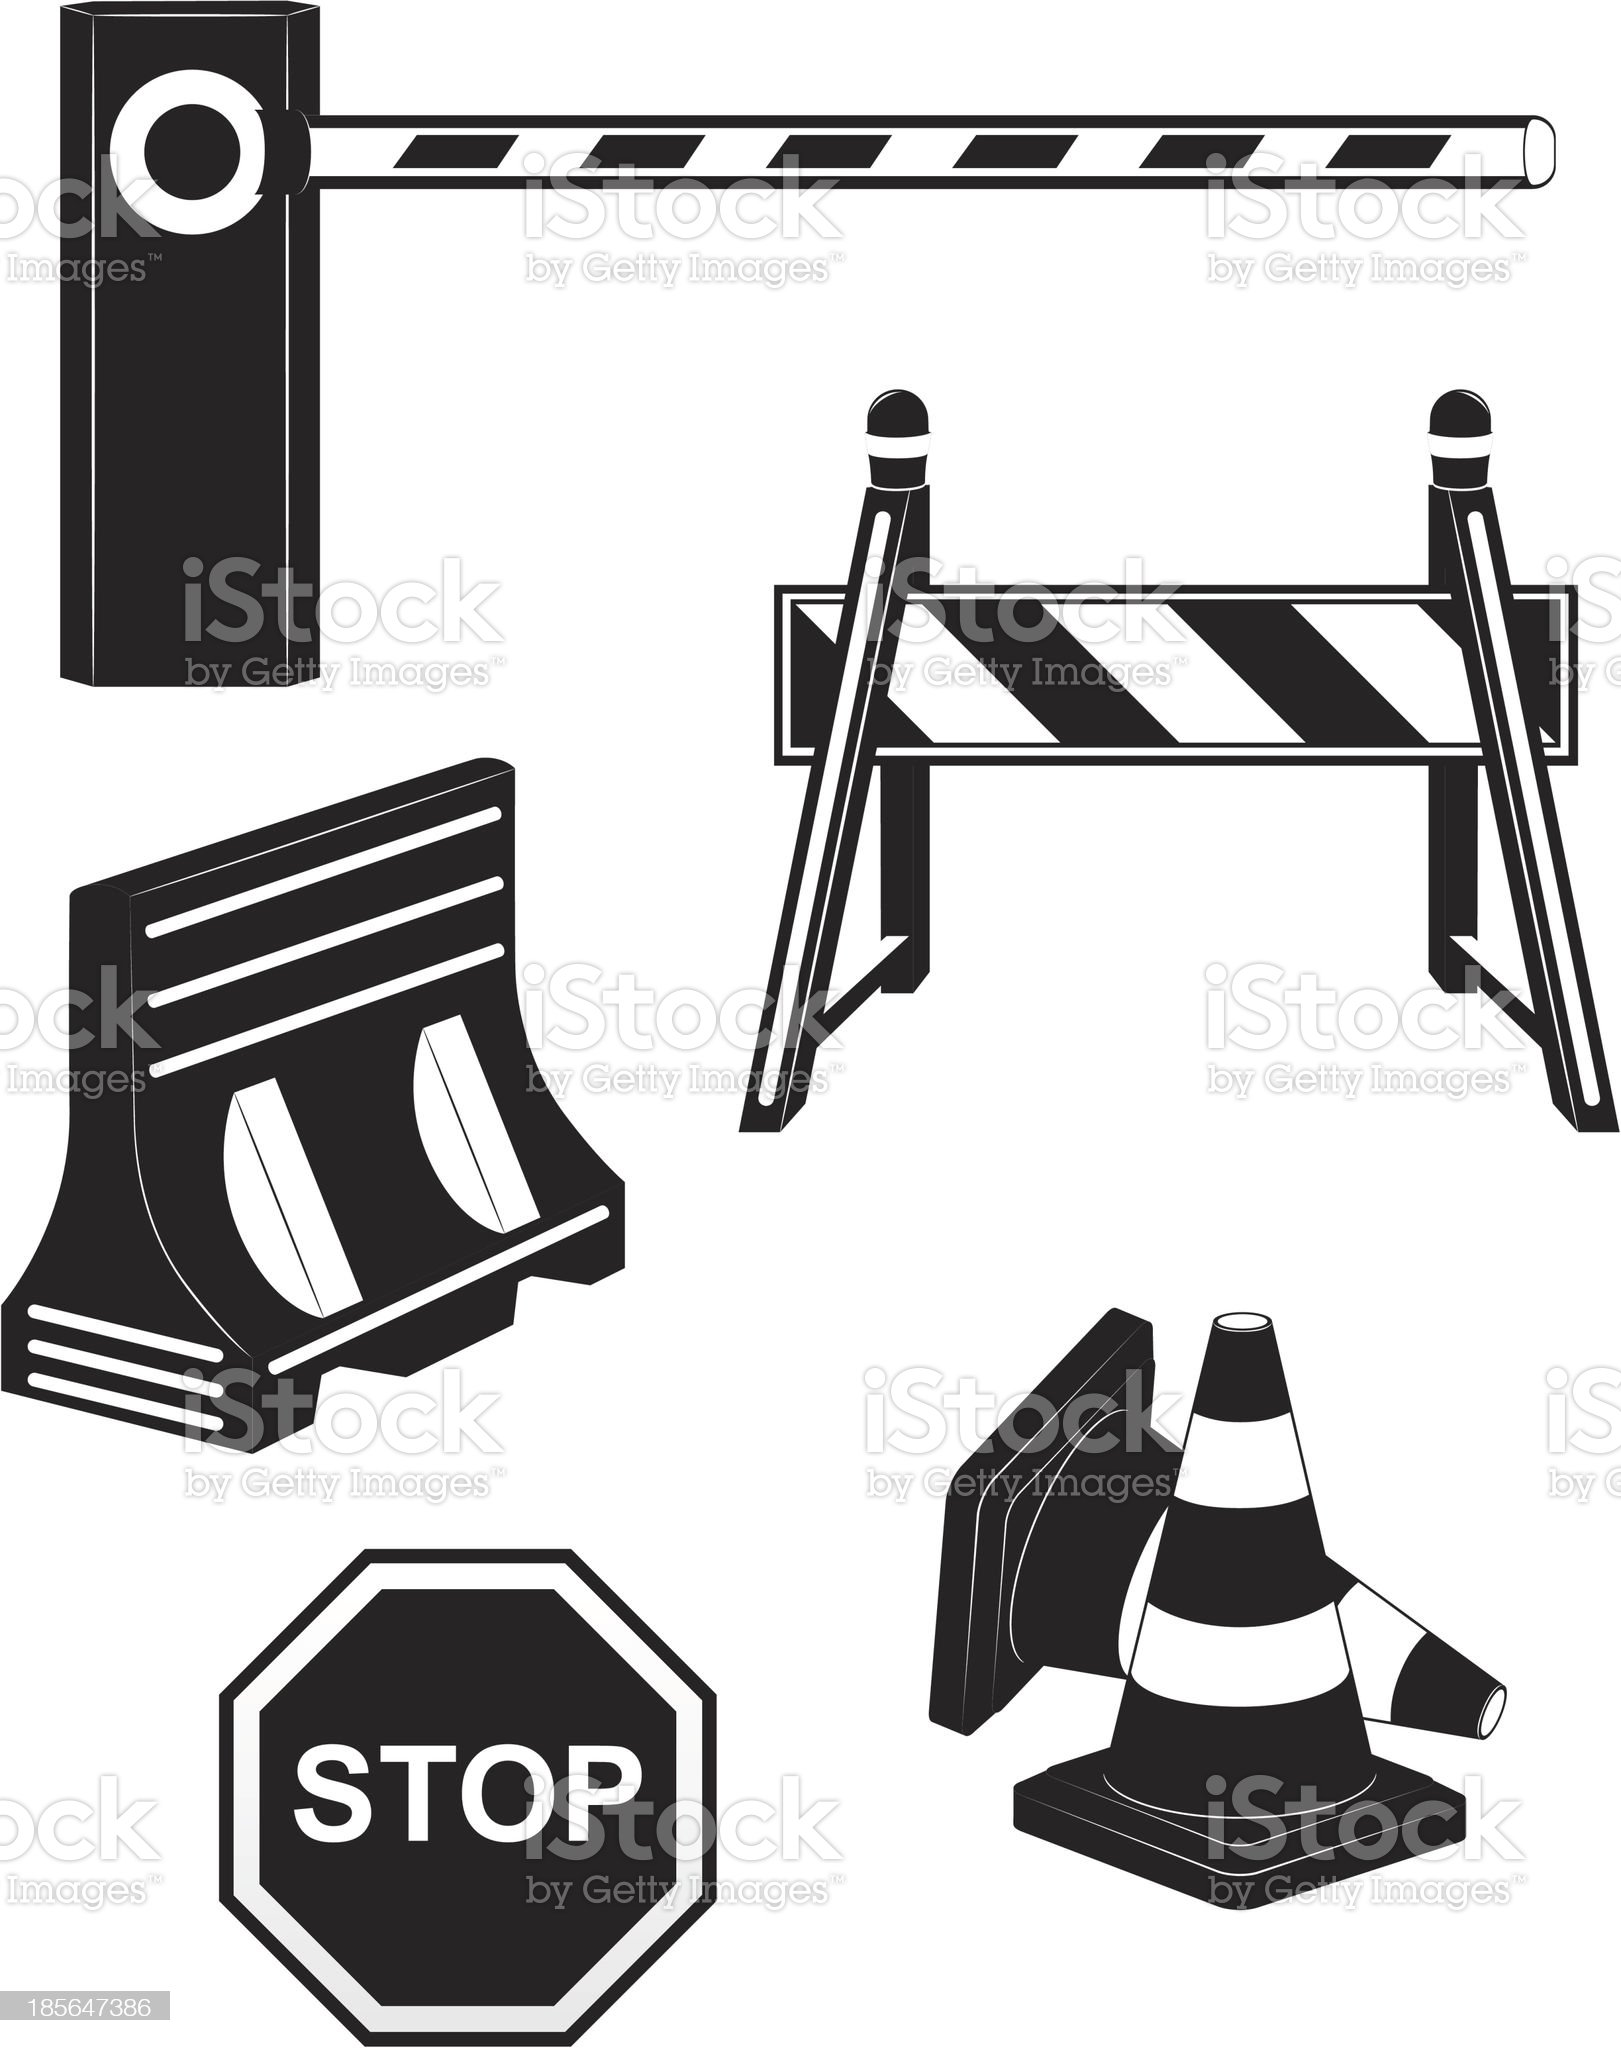 set icons road barrier black silhouette vector illustration royalty-free stock vector art